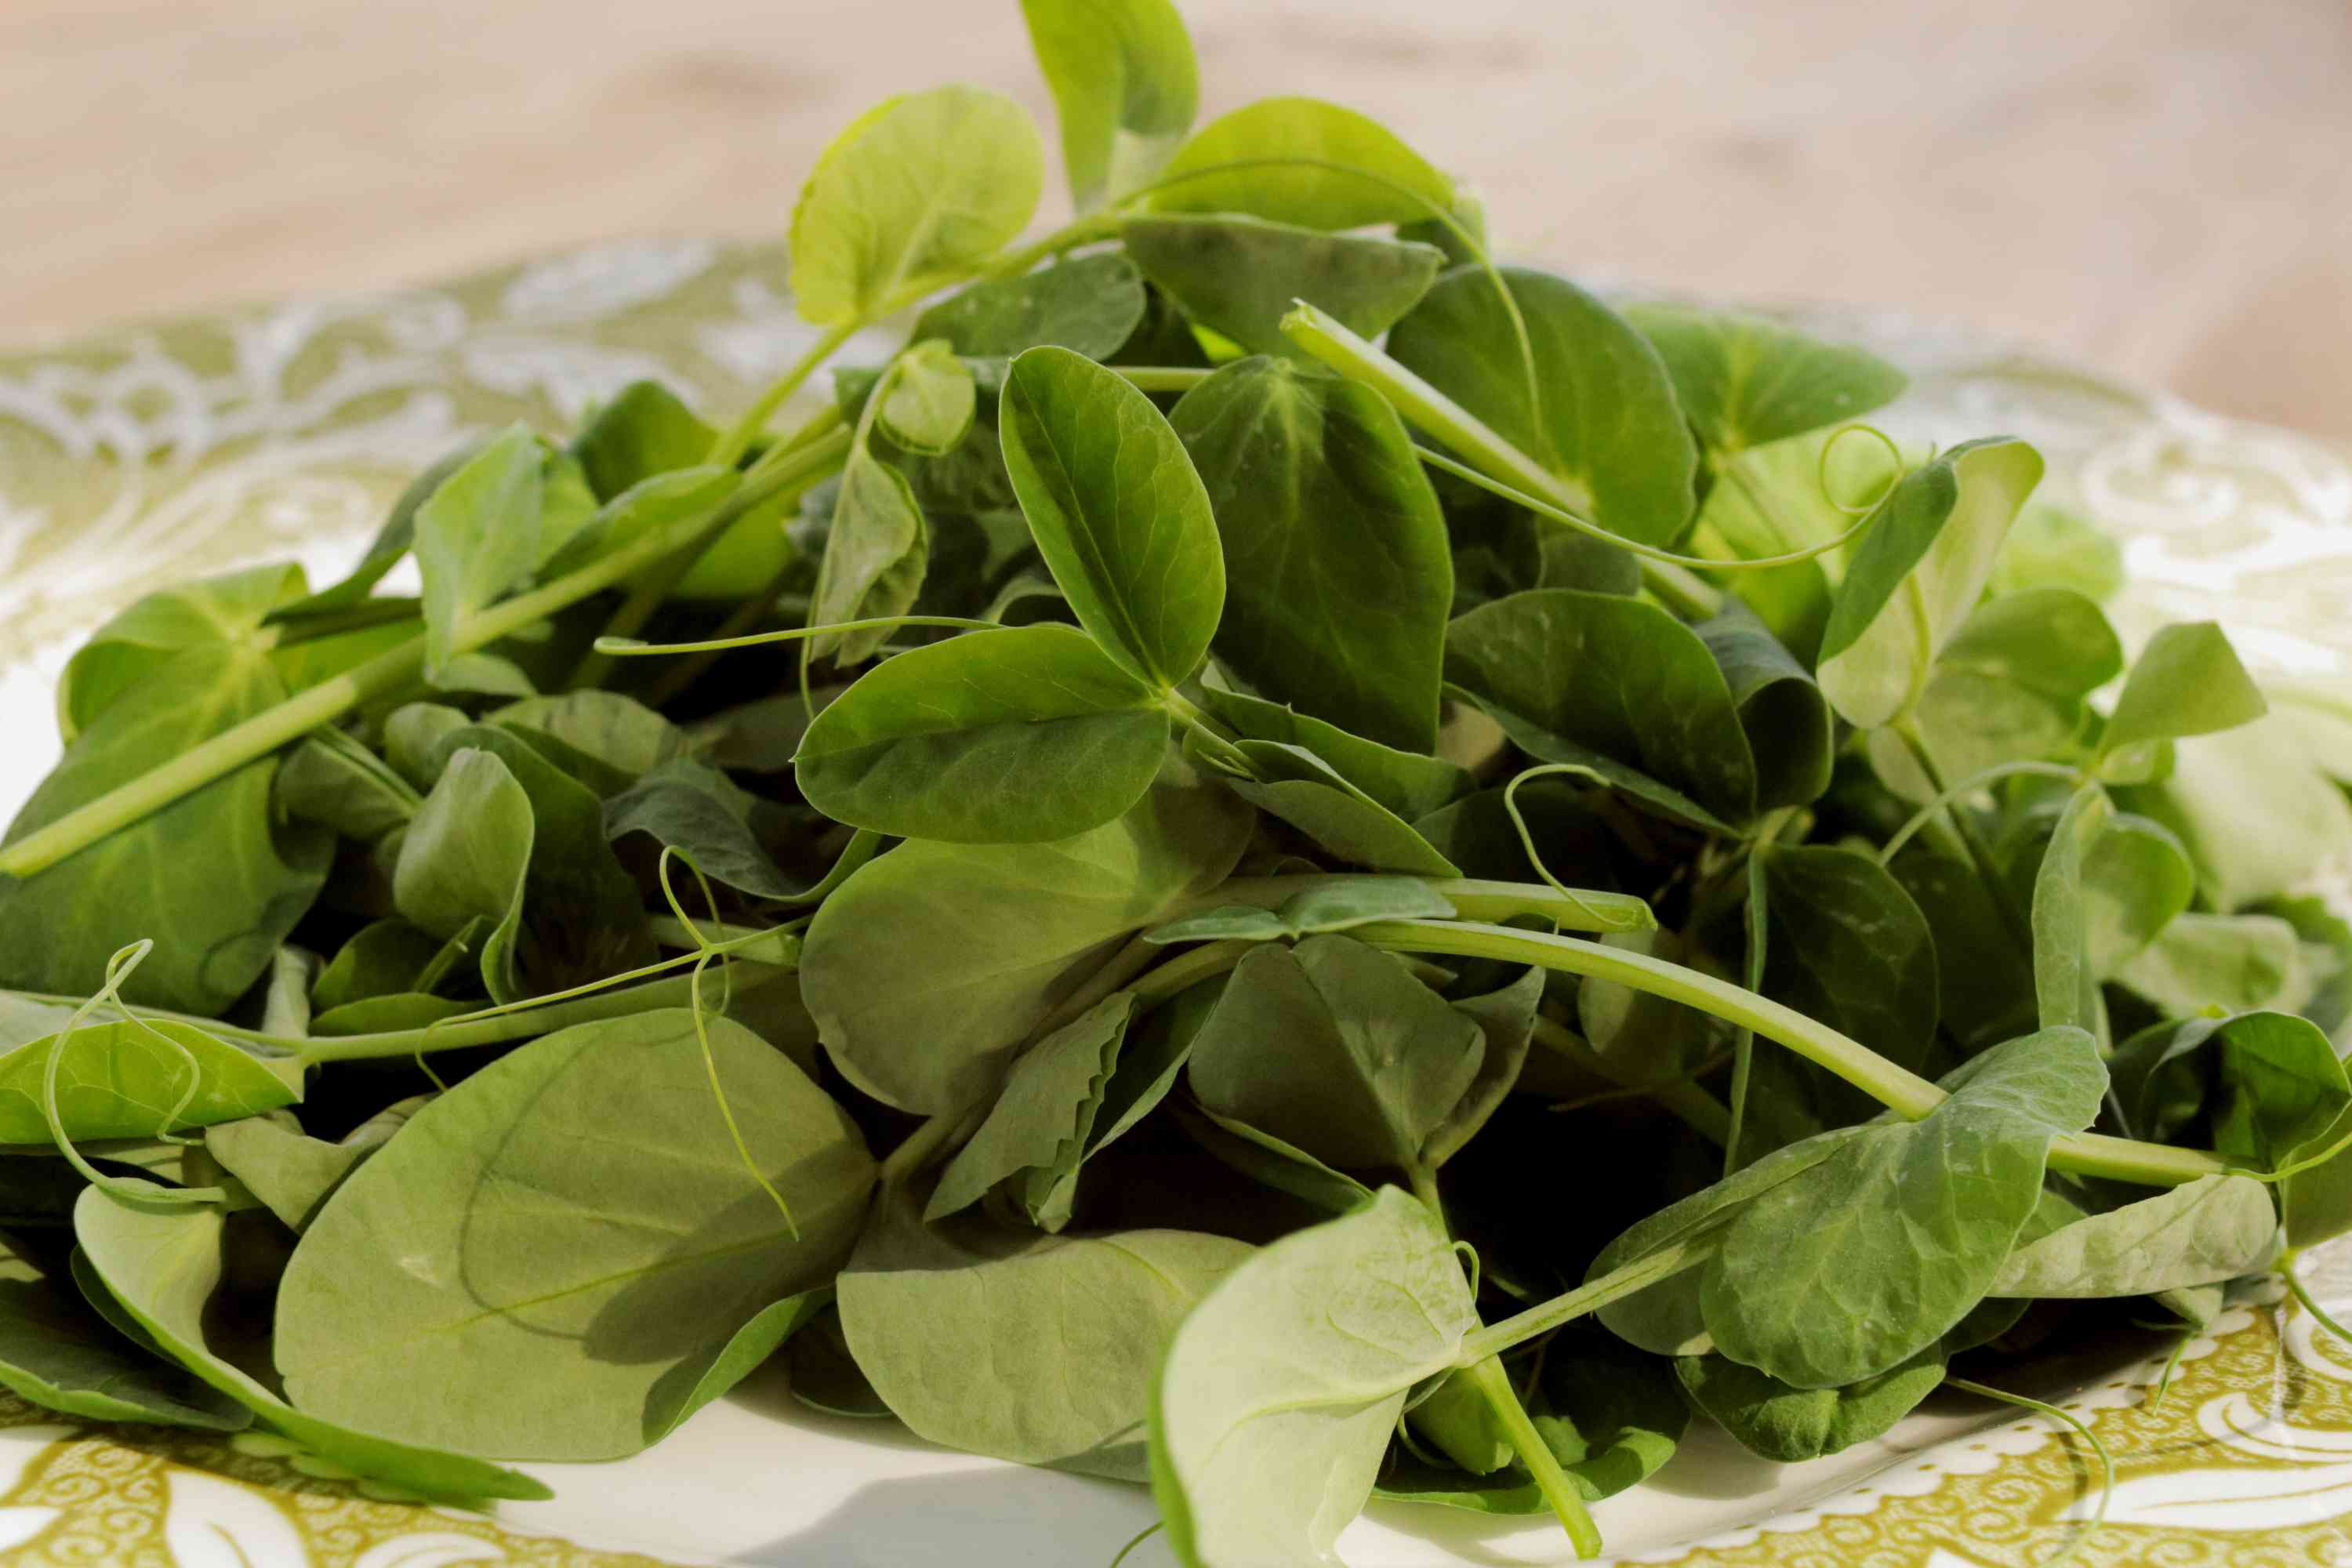 Pea shoots and tendril leaves in white and green ceramic bowl closeup